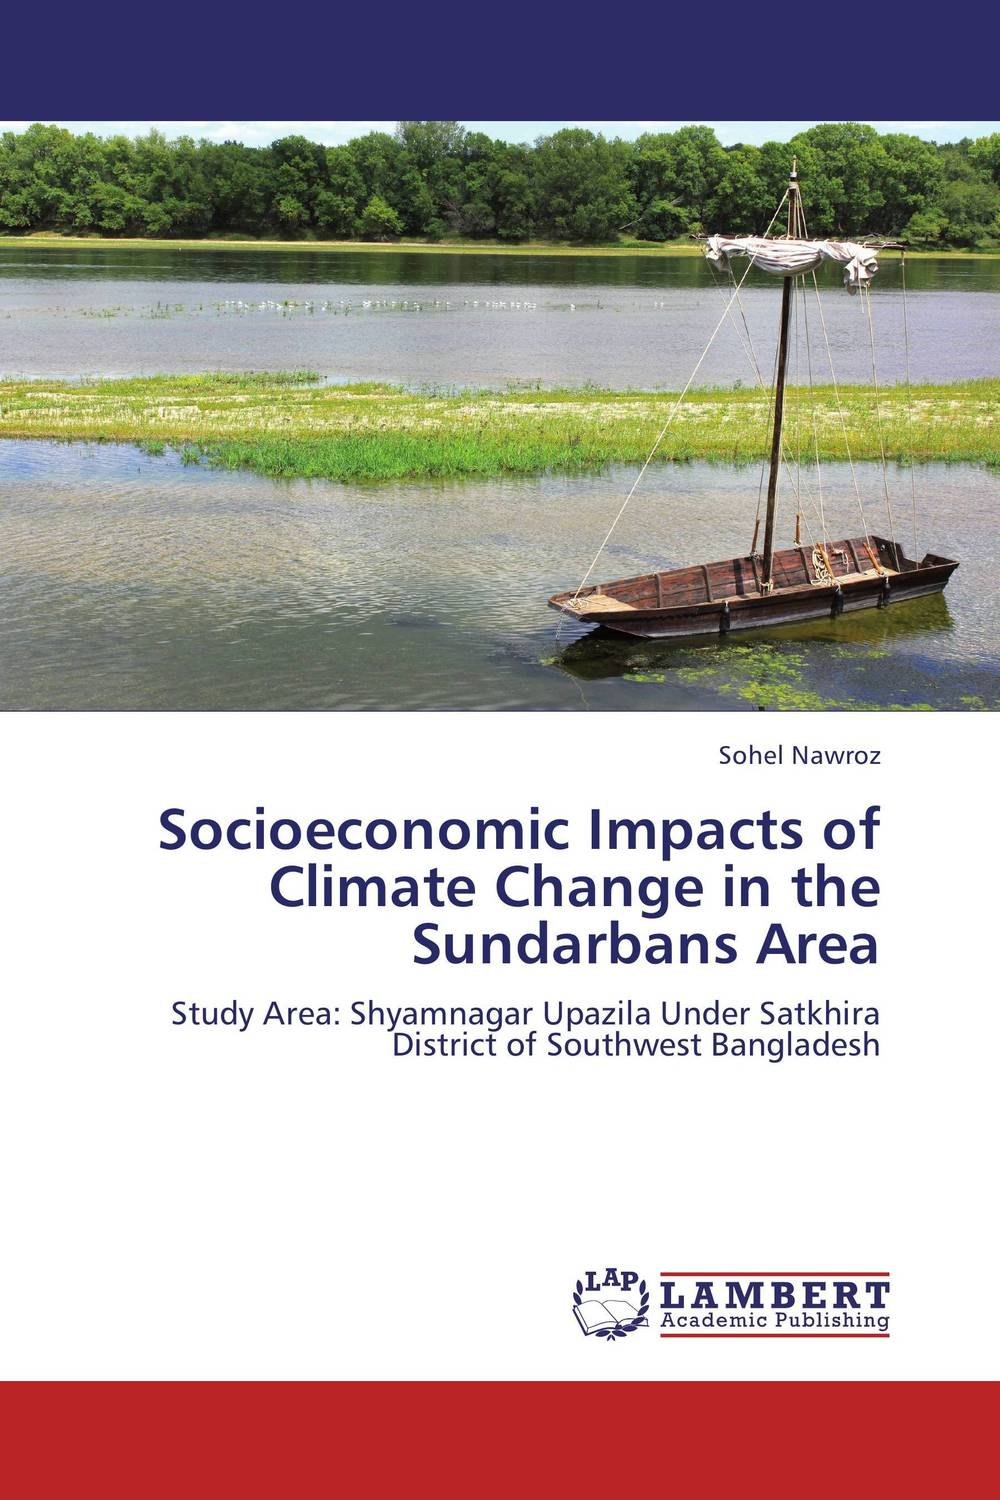 Socioeconomic Impacts of Climate Change in the Sundarbans Area seanlure 101 pcs lure kit free tackle box soft lure glow minnow fly fishing frog grub hook connector clip jig head craw leader